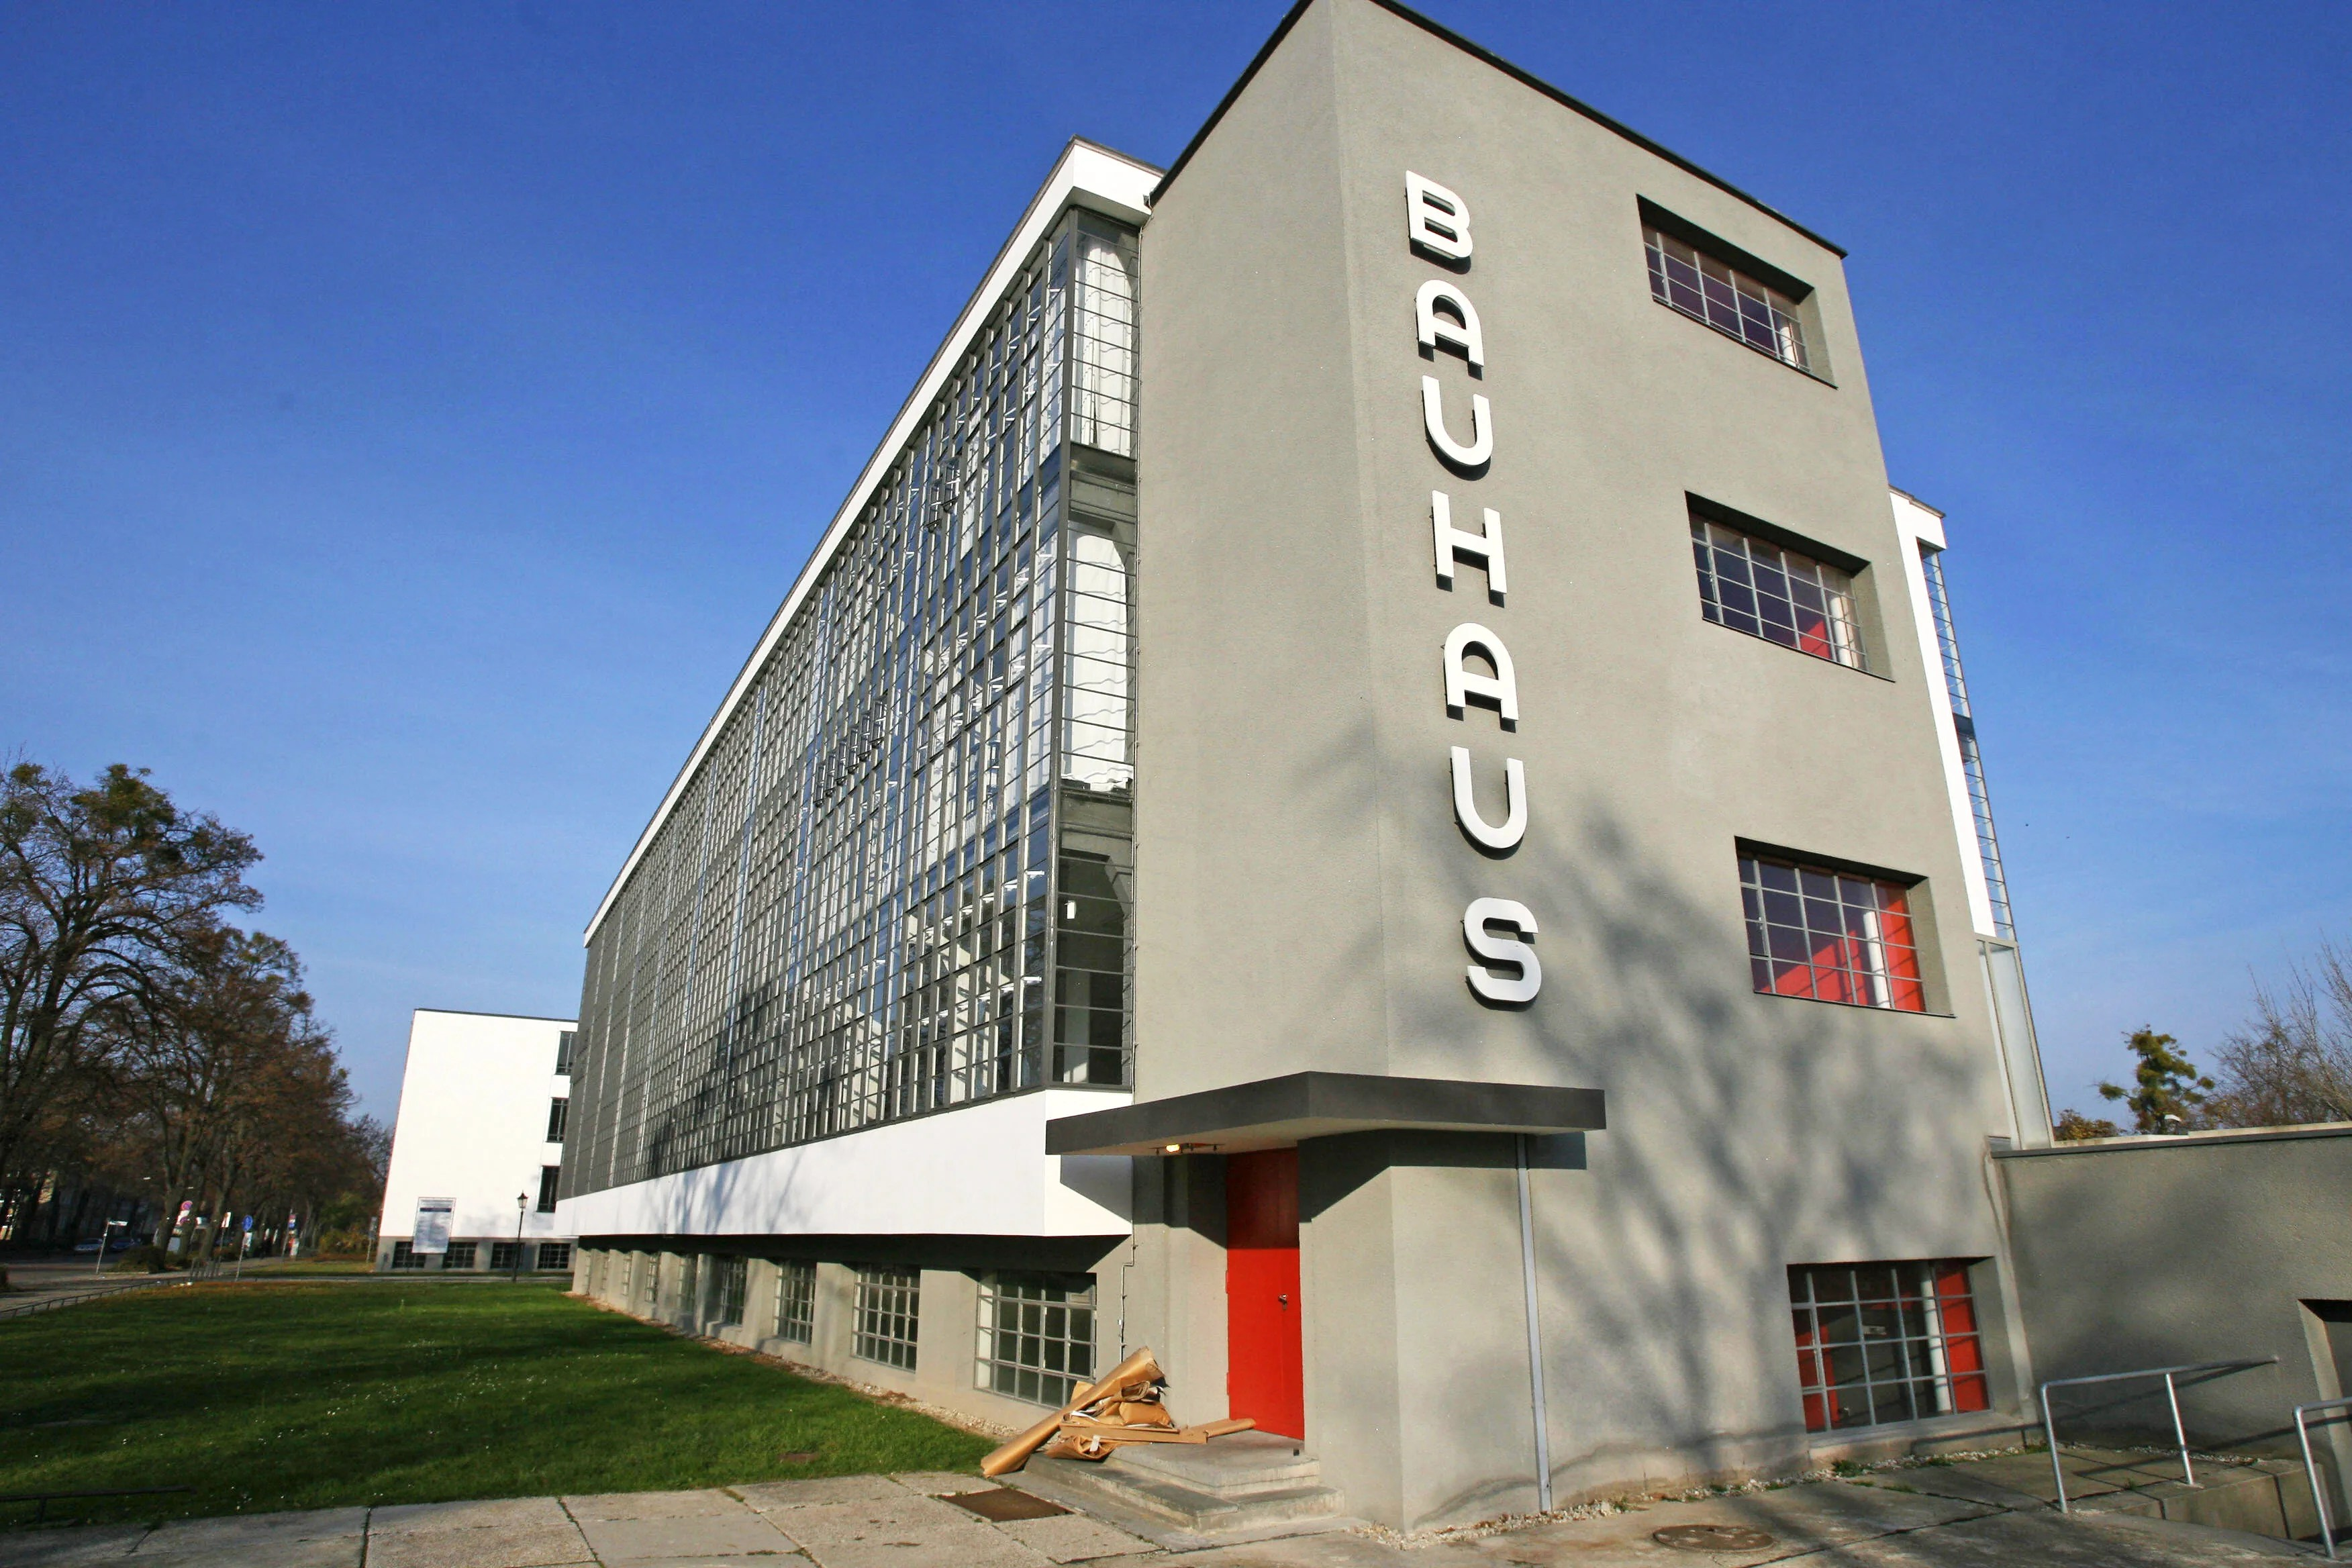 Bauhaus Architekt Walter Gropius And Bauhaus Architecture Photos